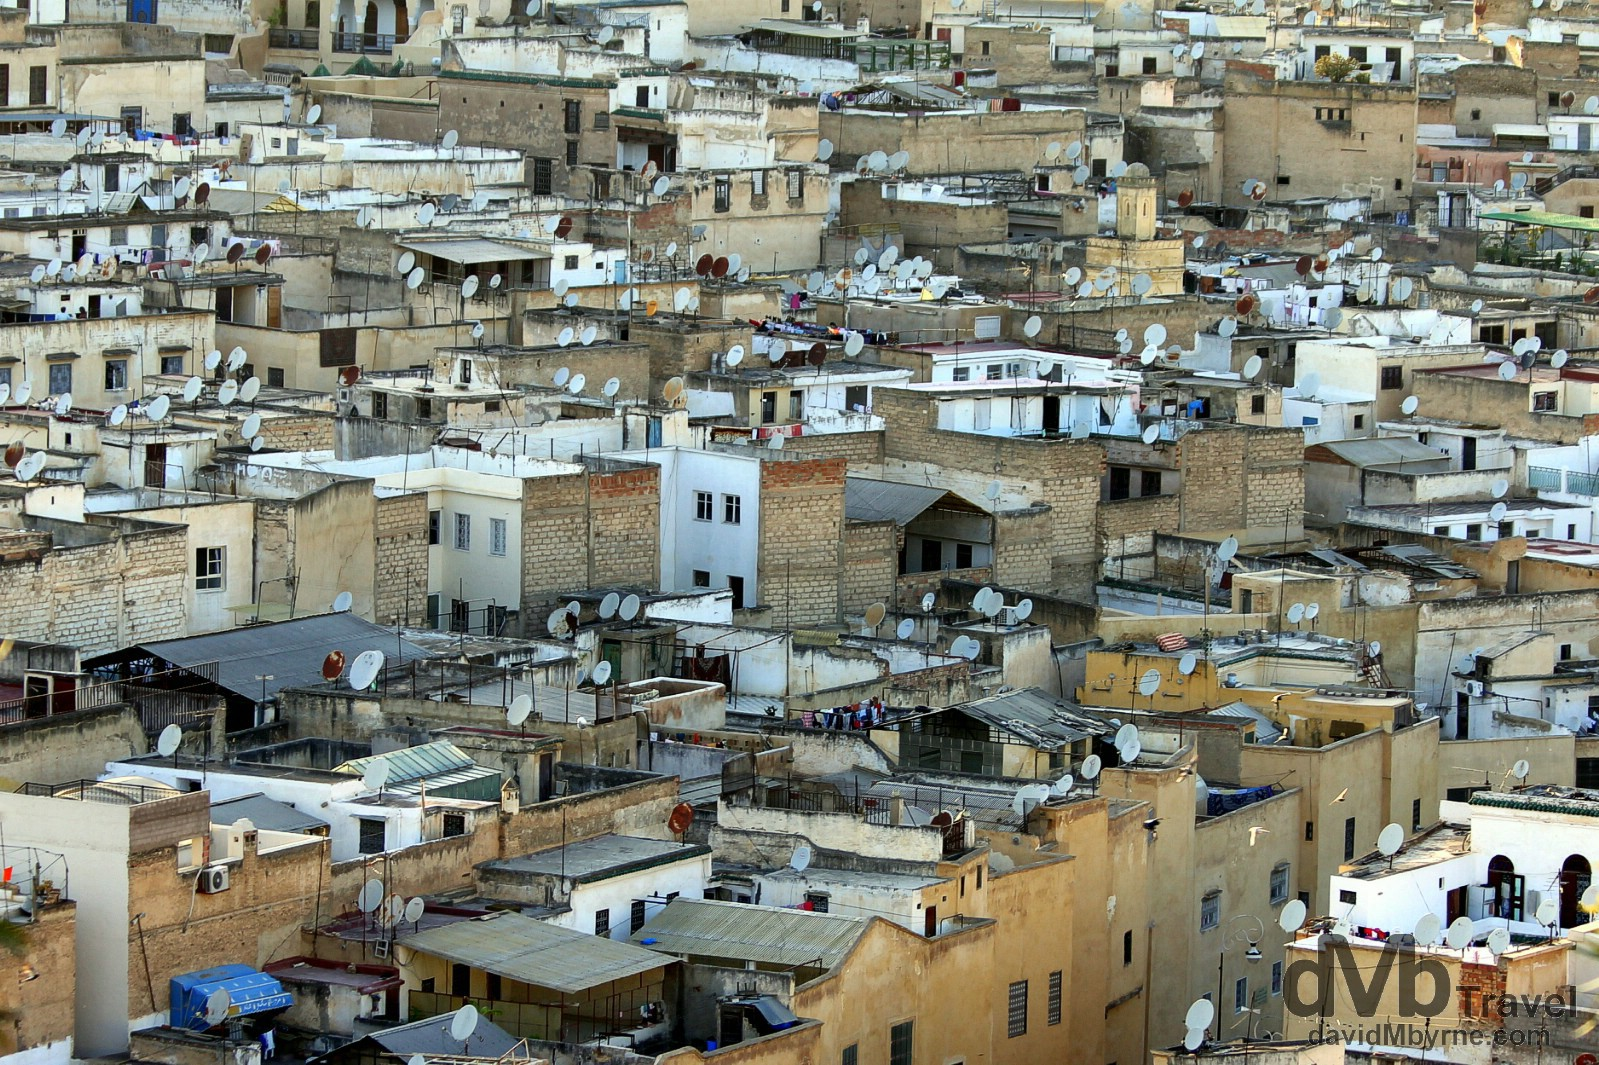 Contrast - satellite dishes on the roofs of a section of the ancient medina of Fes el Bali (Old Fes) as seen from Borj Sud (South Tower) in Fez, Morocco. May 27th, 2014.